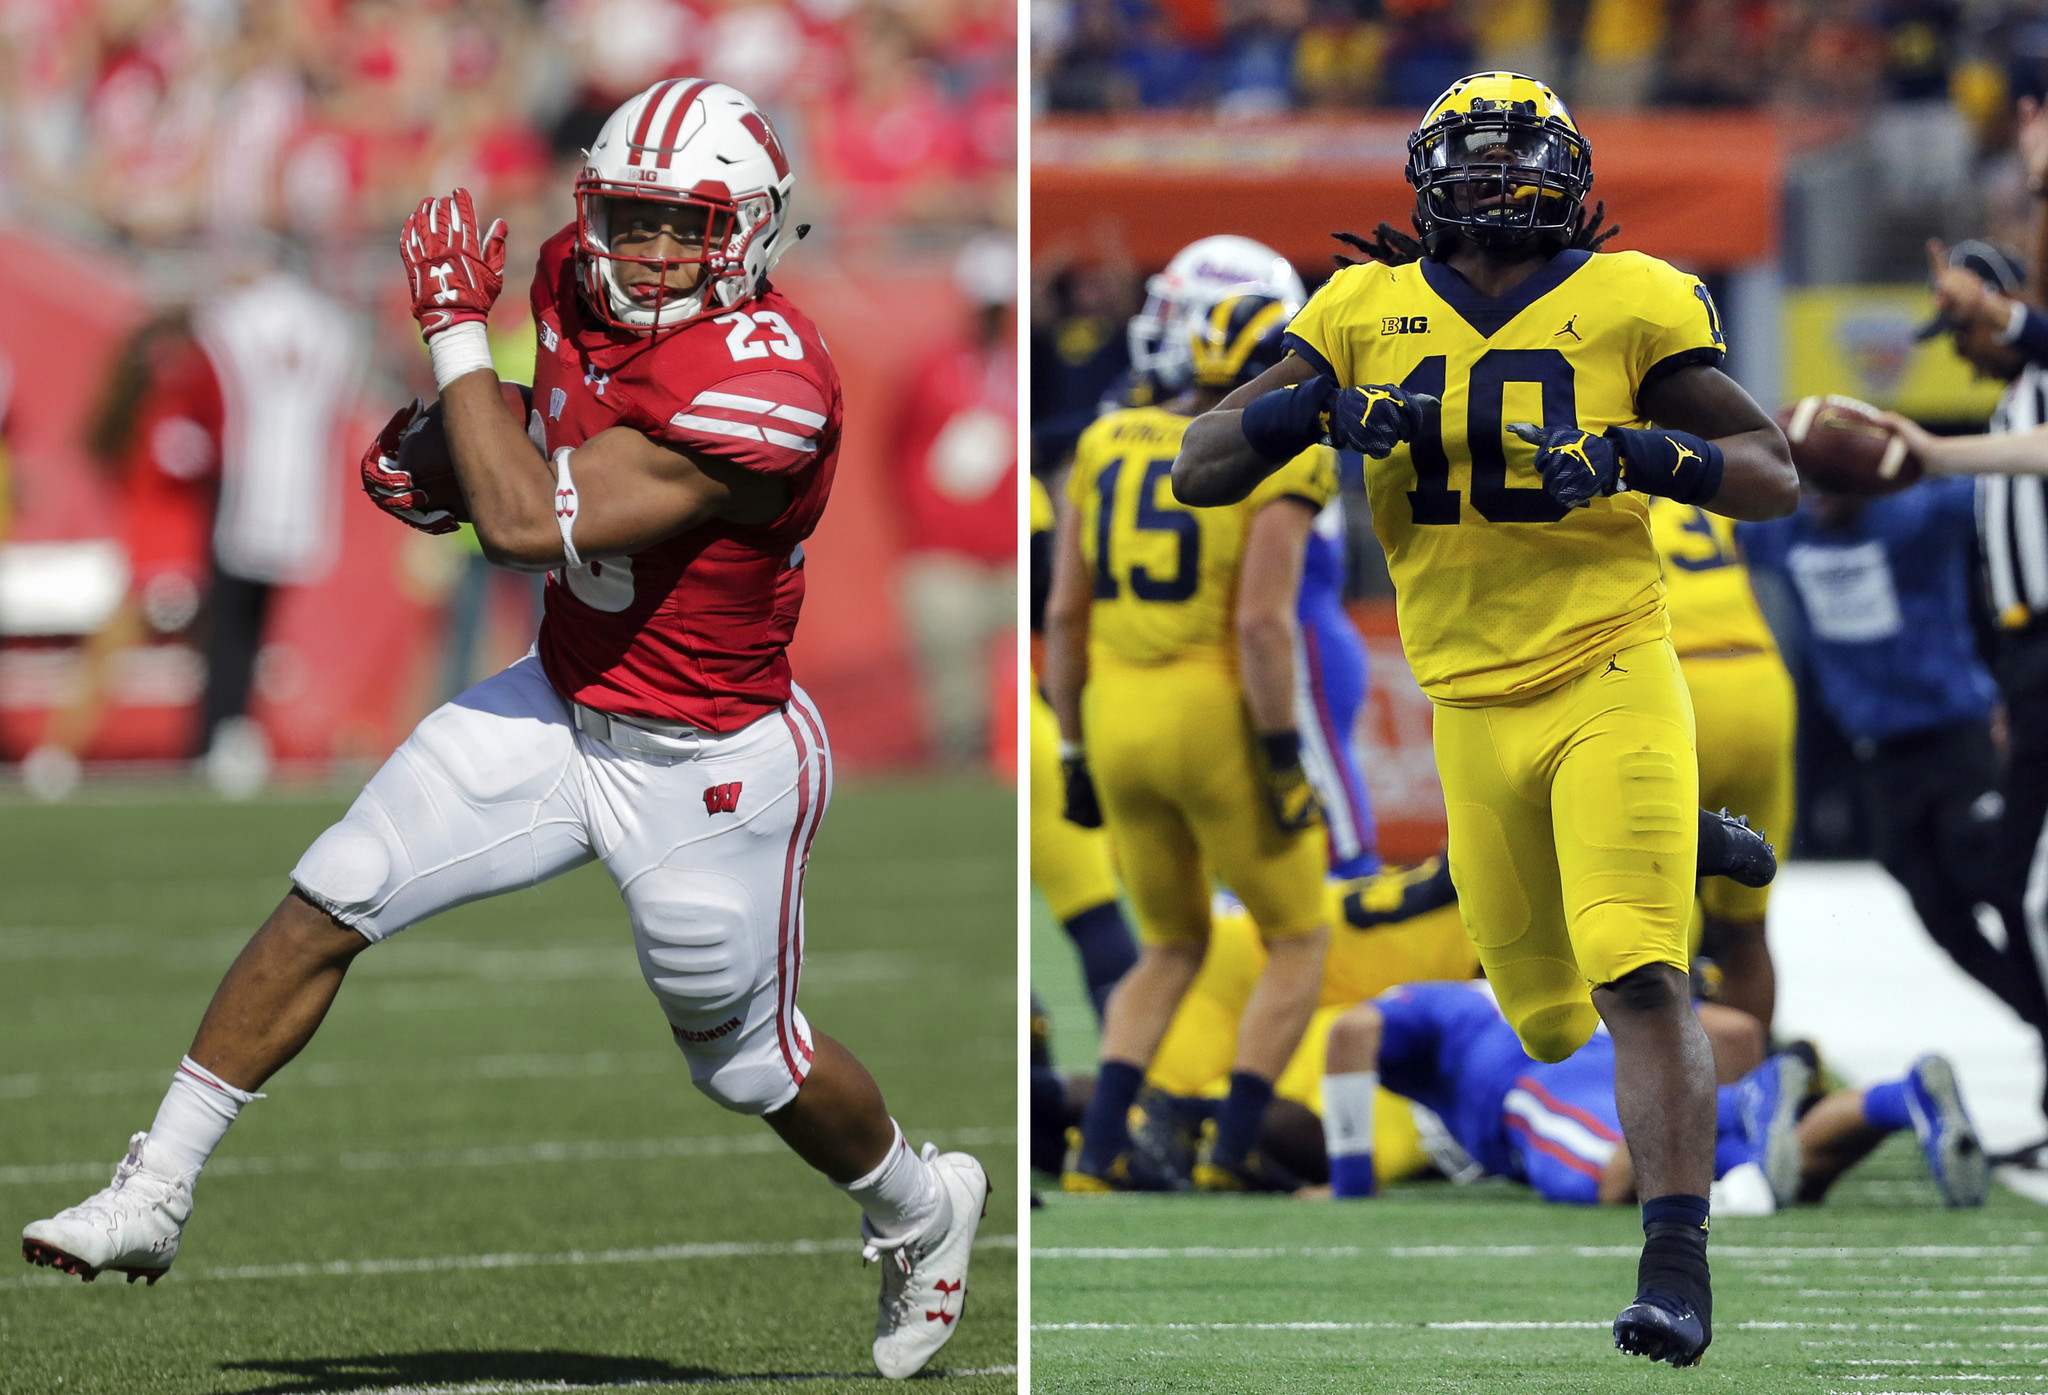 Ct-wisconsin-michigan-preview-spt-1118-20171117